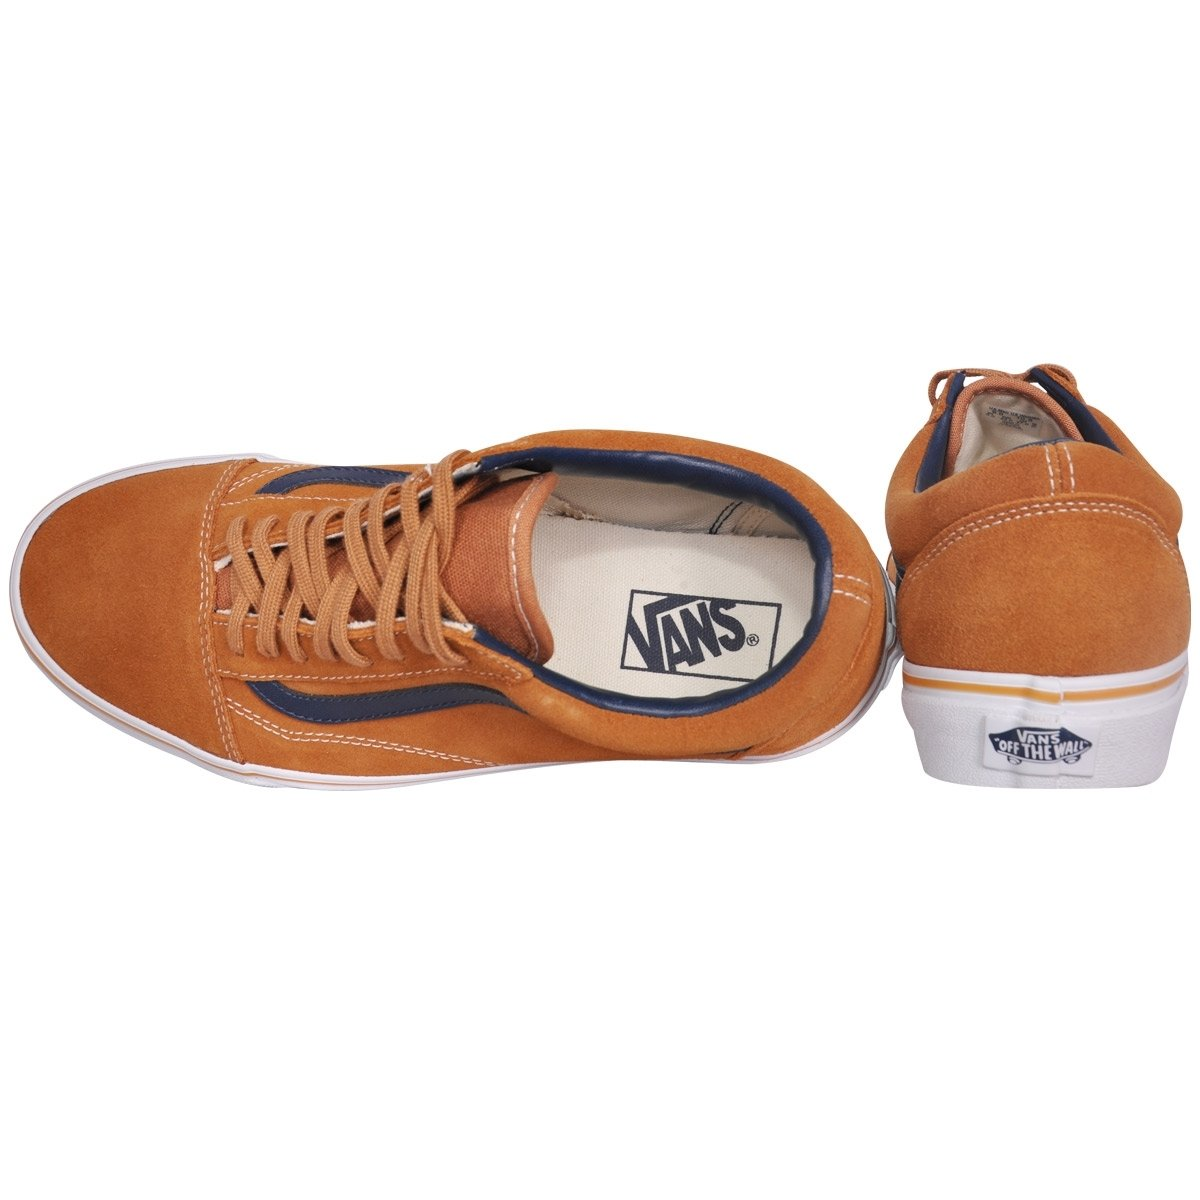 435b2afbd5f735 Tênis Vans Old Skool Suede Leather Brown Sugar - Compre Agora